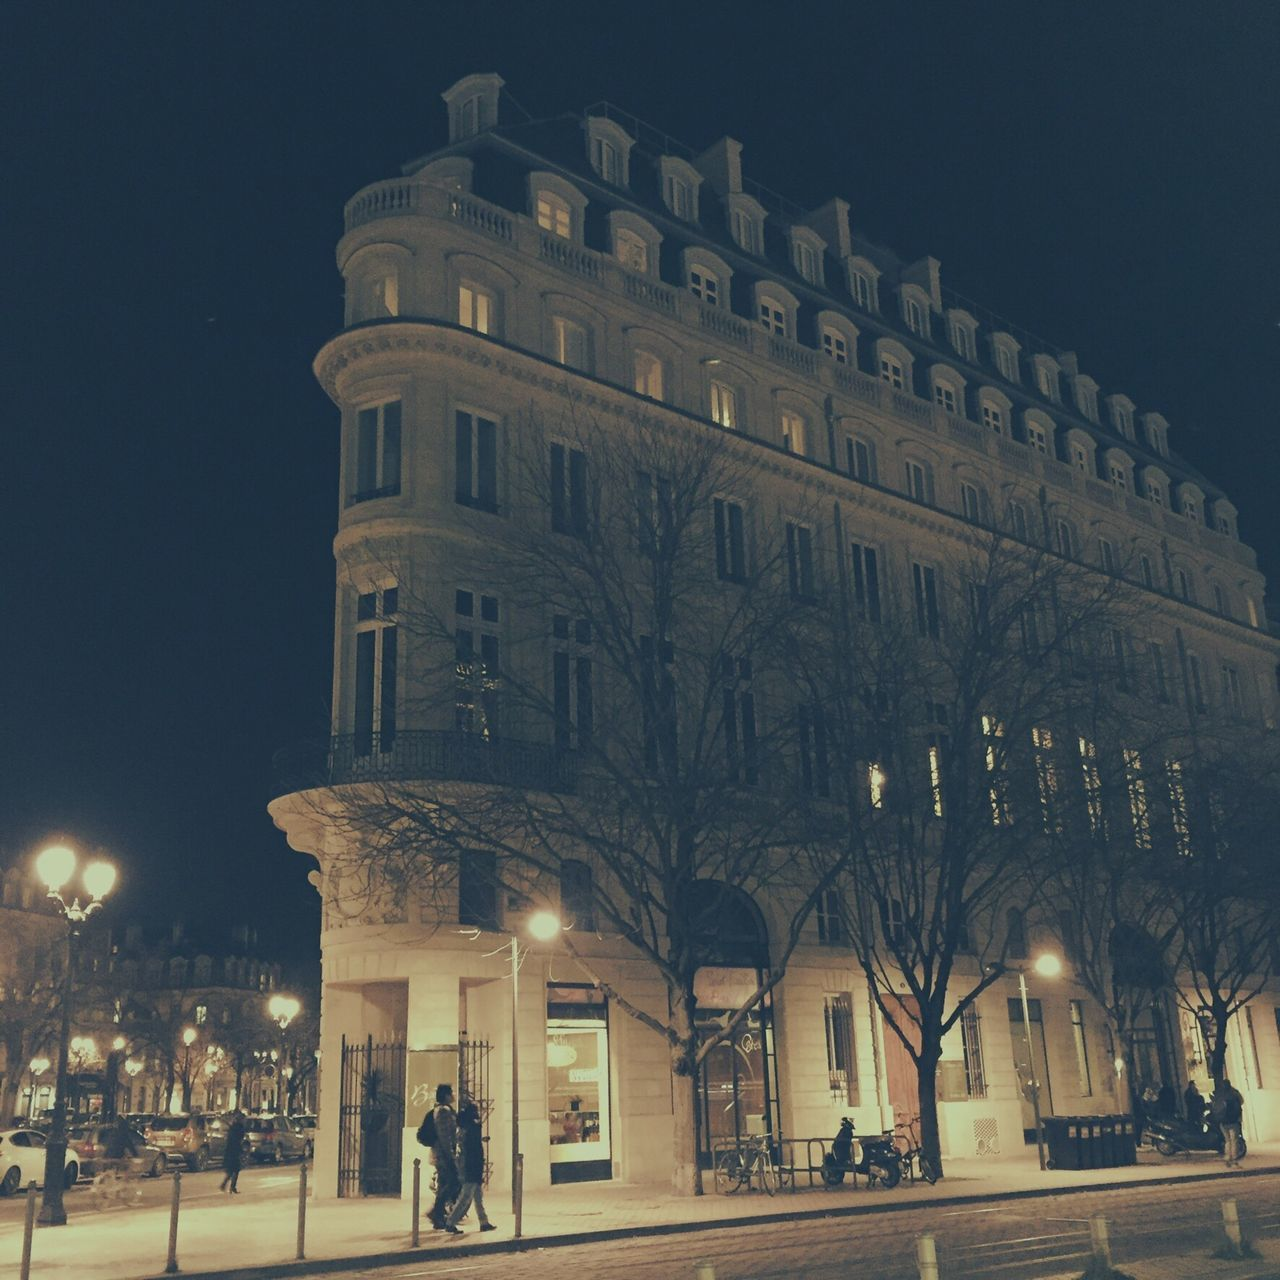 Architecture Building Exterior Built Structure Night Illuminated Tourism Travel Destinations City Outdoors Sky No People Street Photography Building Photography Bordeaux, France Old Buildings Buildingstyles